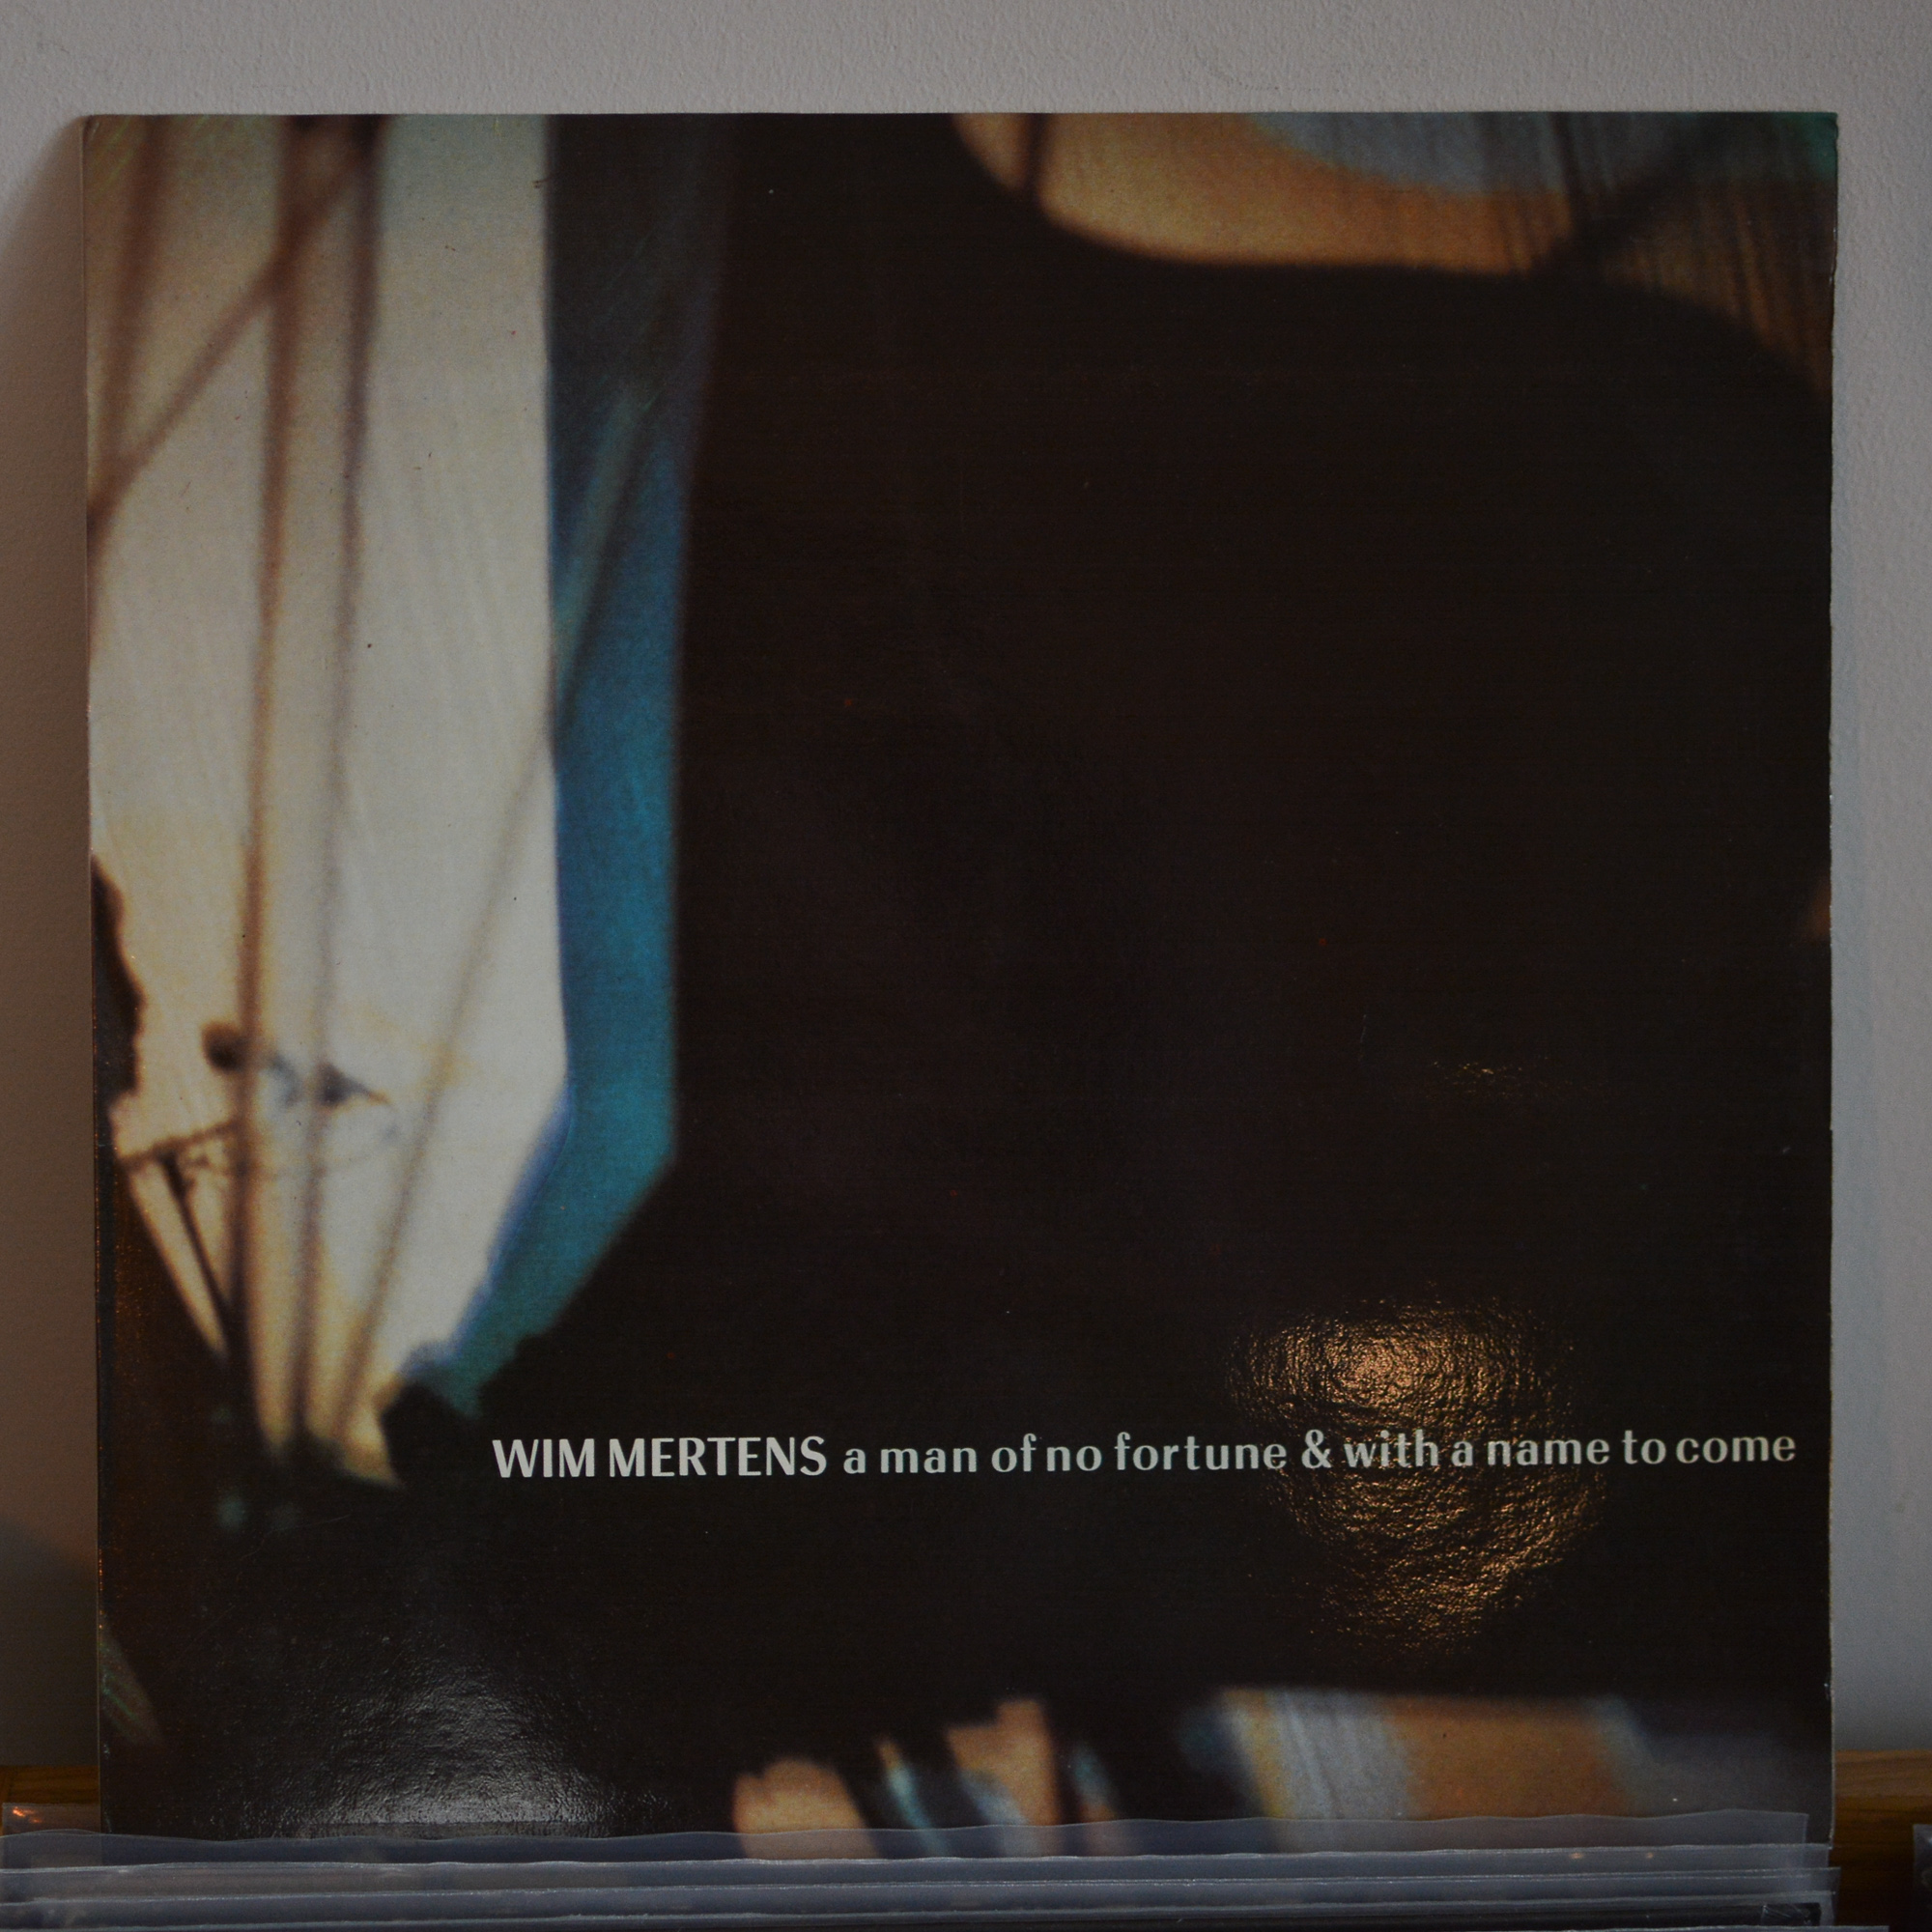 Wim Mertens – A Man Of No Fortune & With A Name To Come